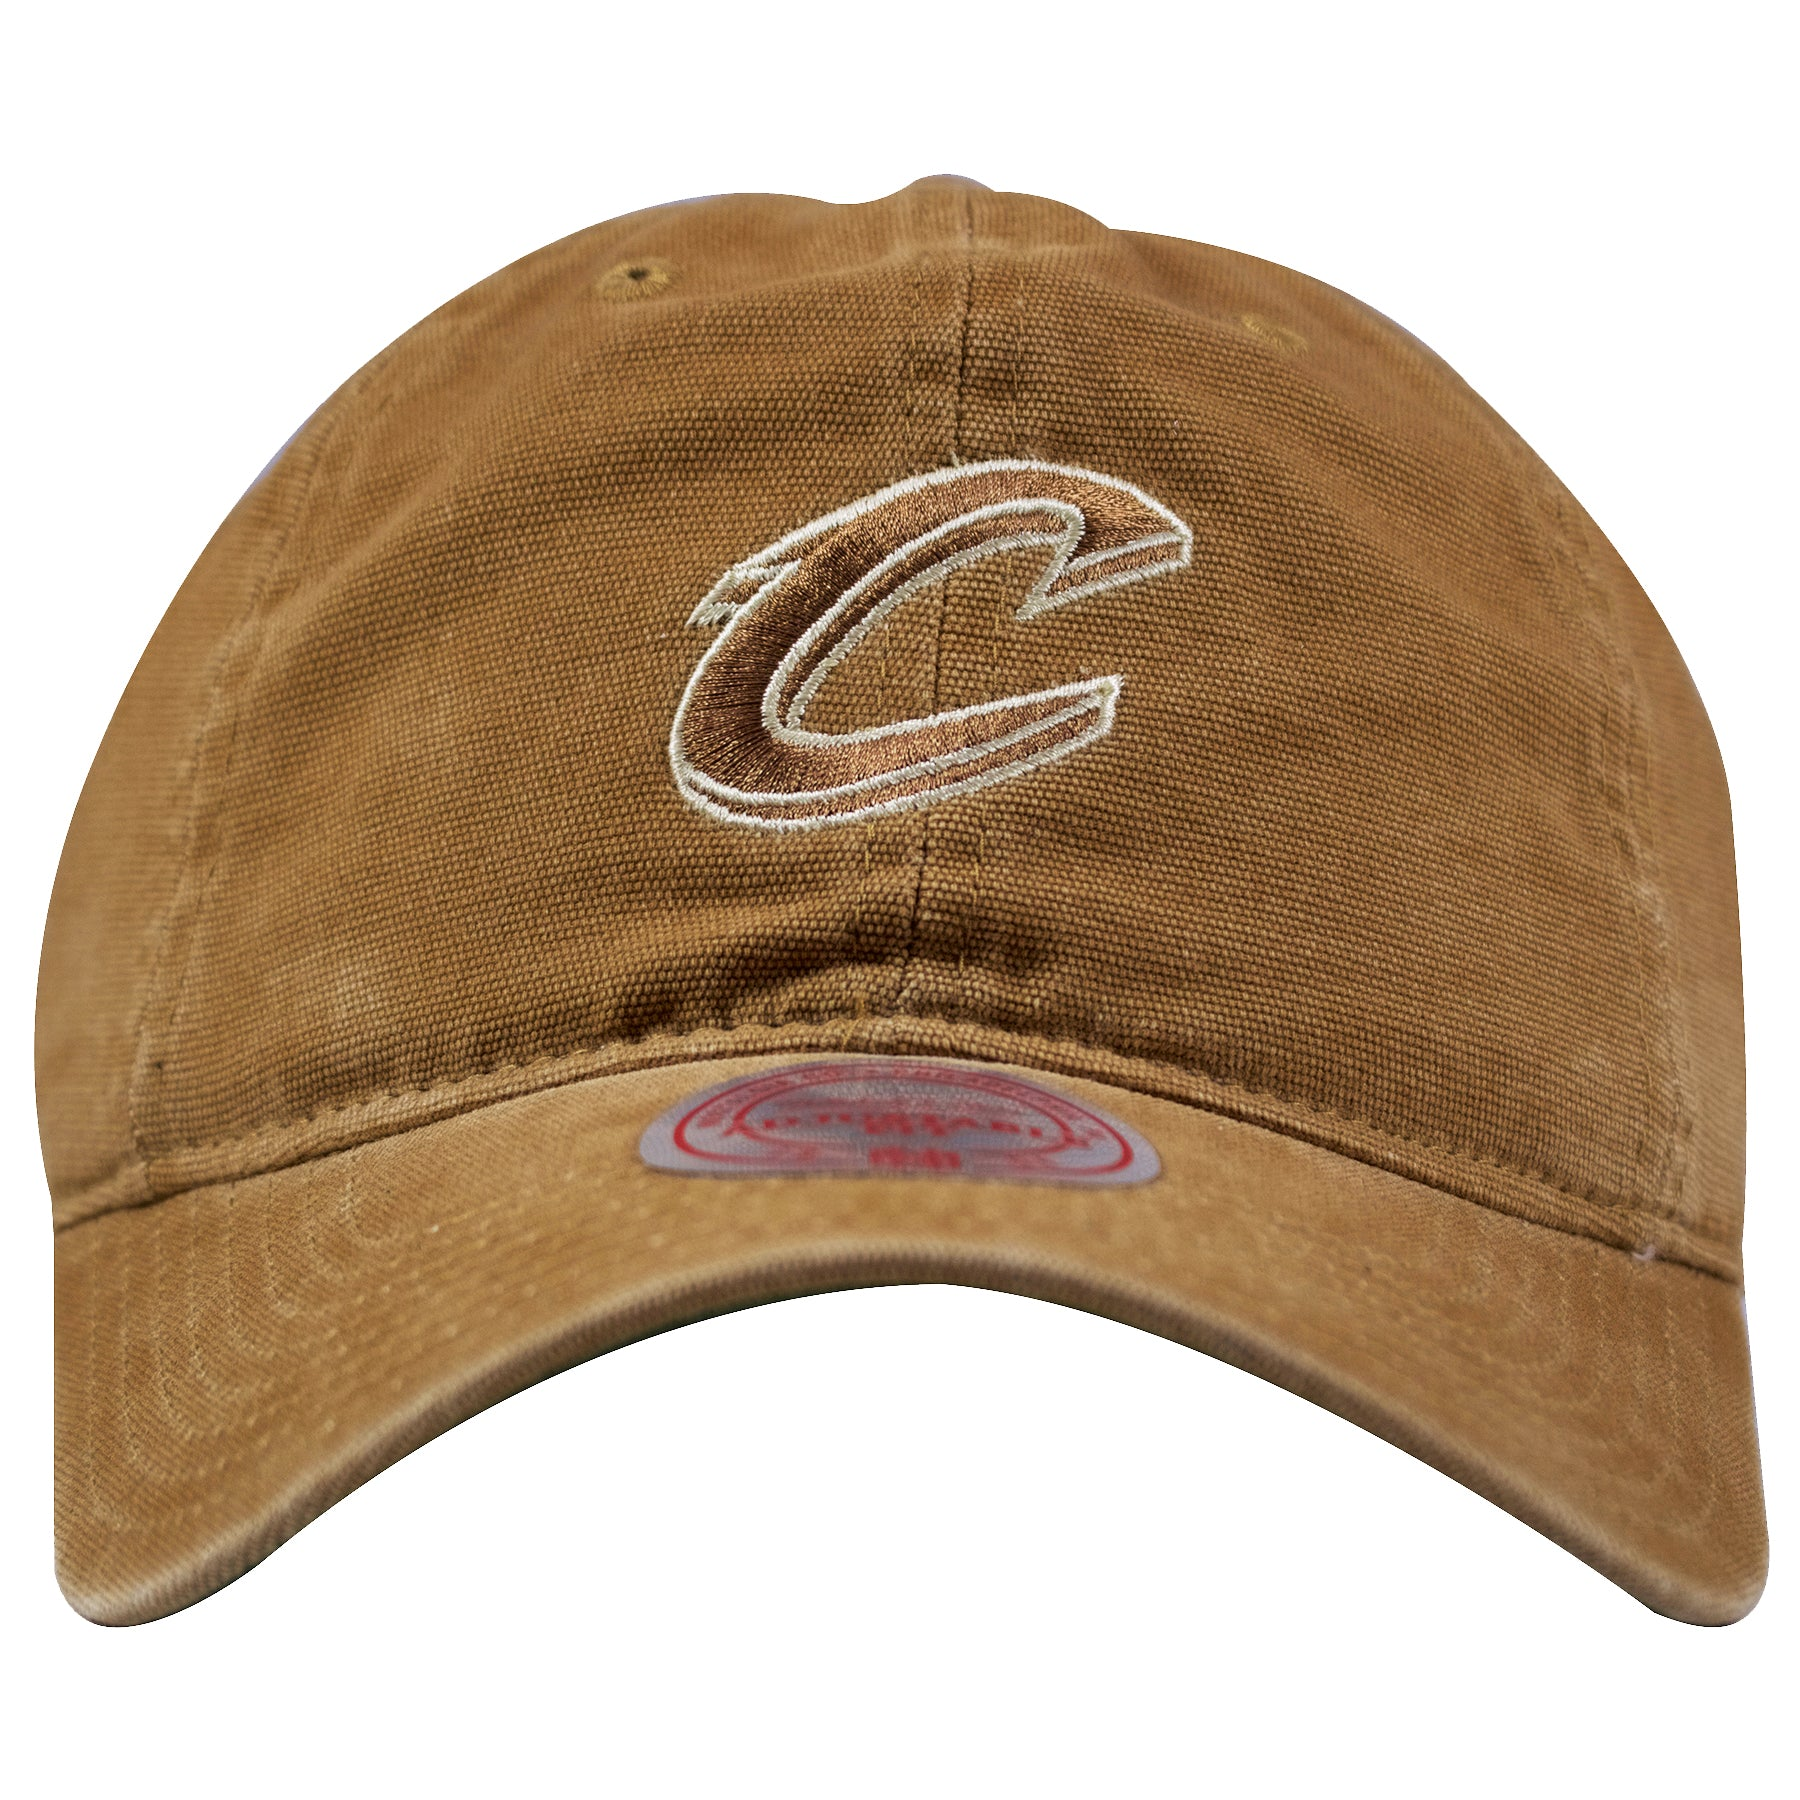 63f4d20874b66 on the front of the cleveland cavaliers workman s utility cotton cleeland  cavaliers dad hat is tan